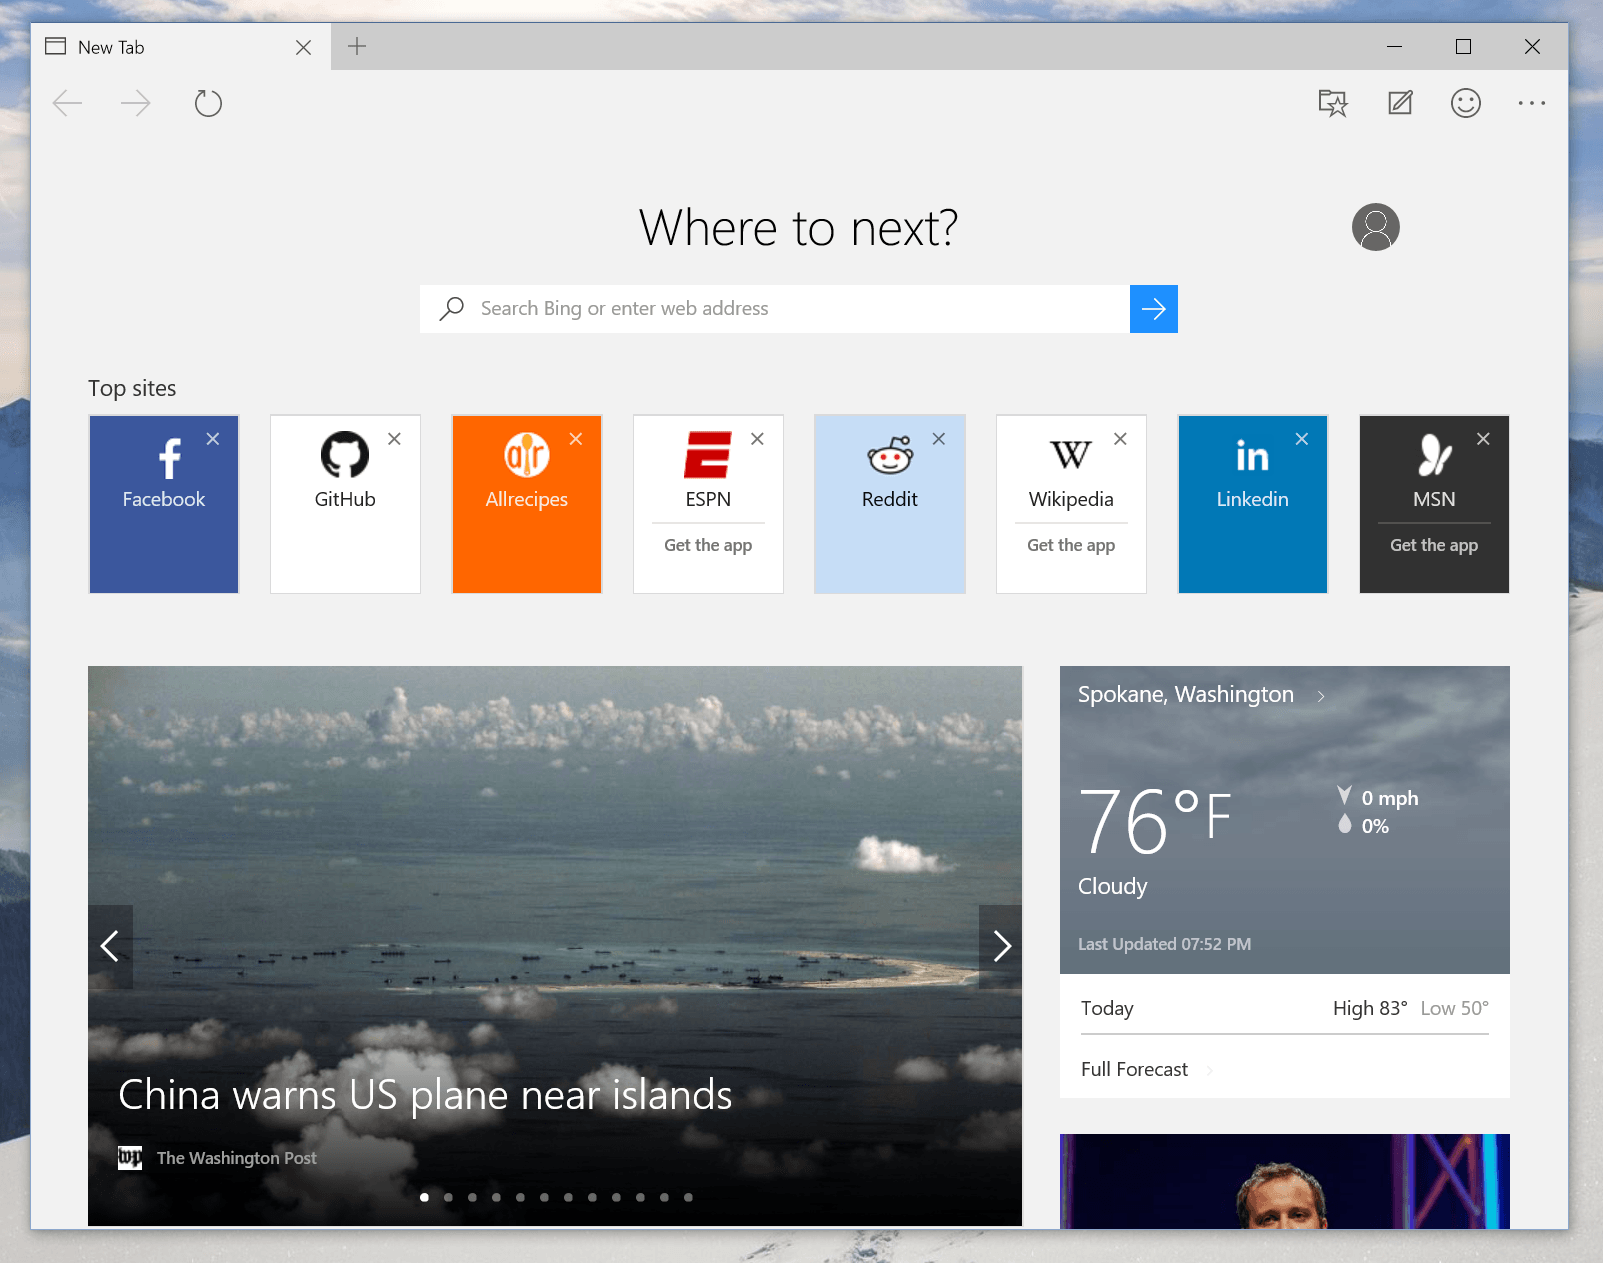 Turn off weather in new tab page in edge. edge_newtab_10122_1.png